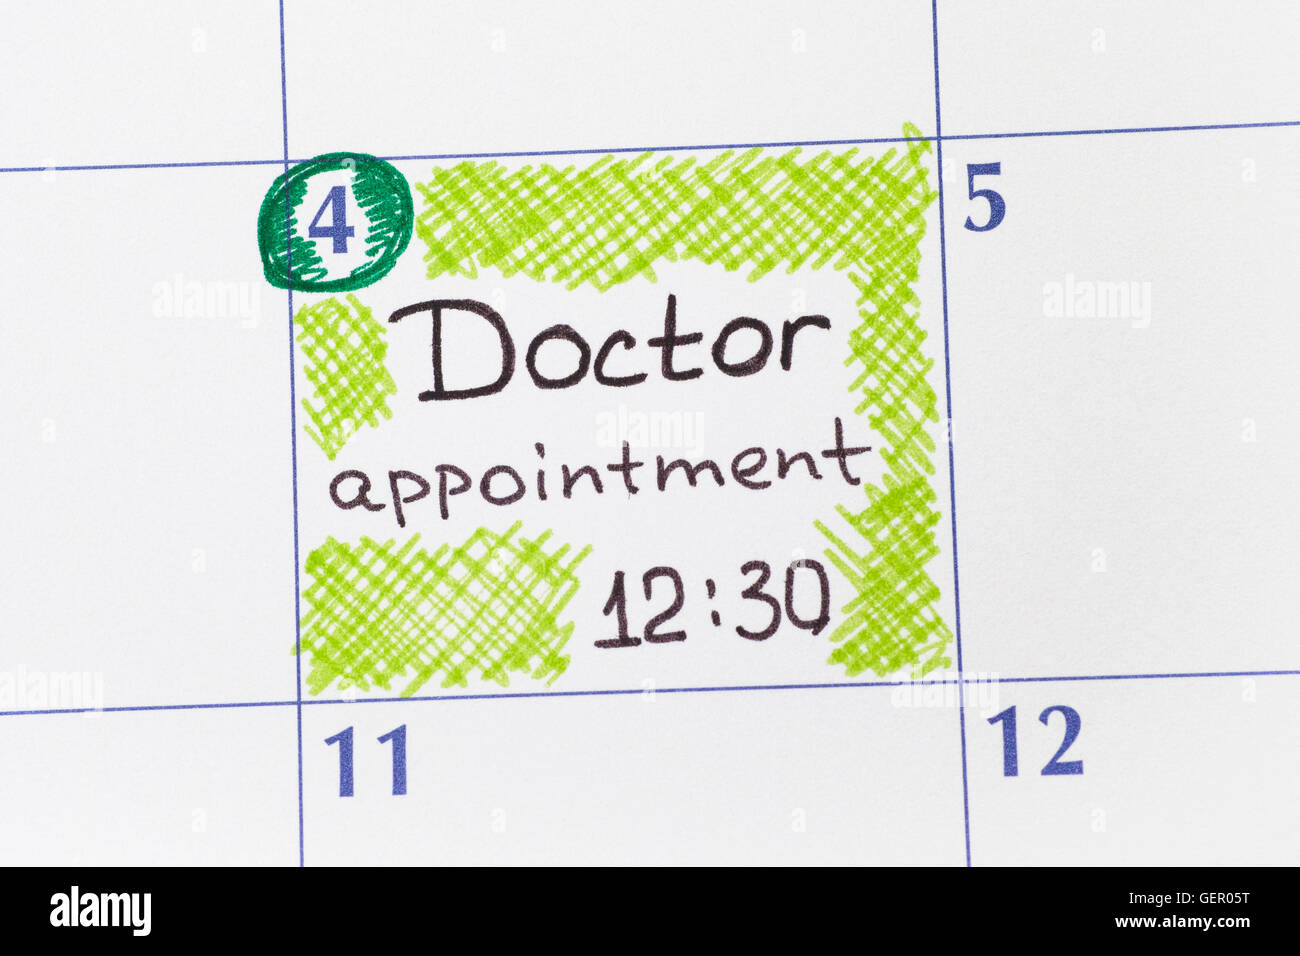 Reminder Doctor appointment 12-30 in calendar. - Stock Image